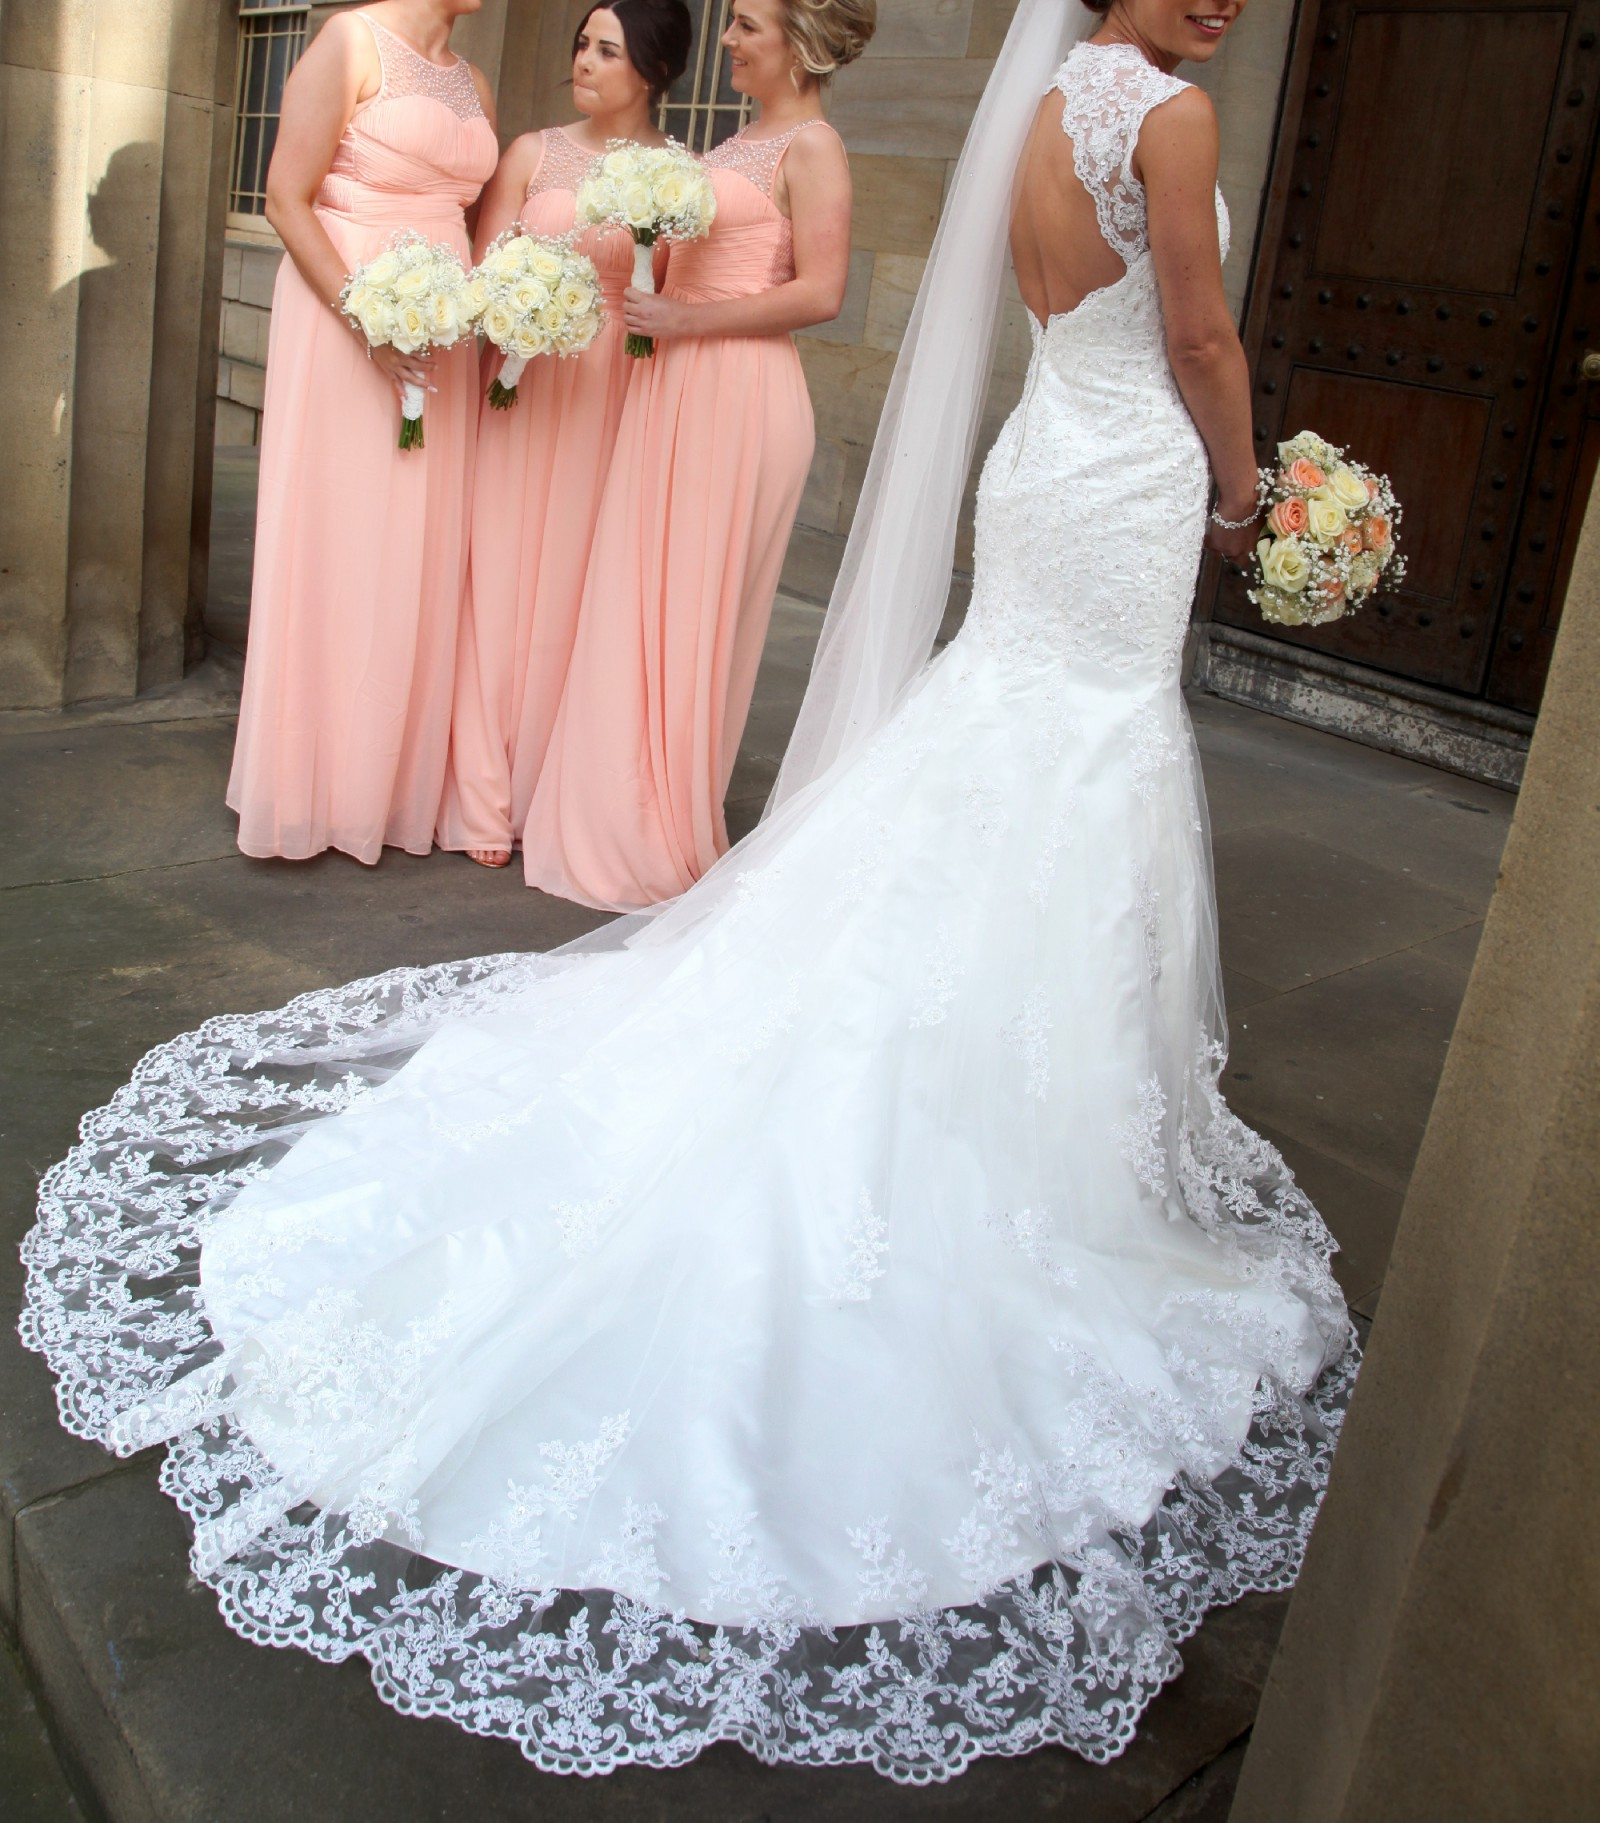 Viva bride mimosa used wedding dress on sale for White fishtail wedding dress